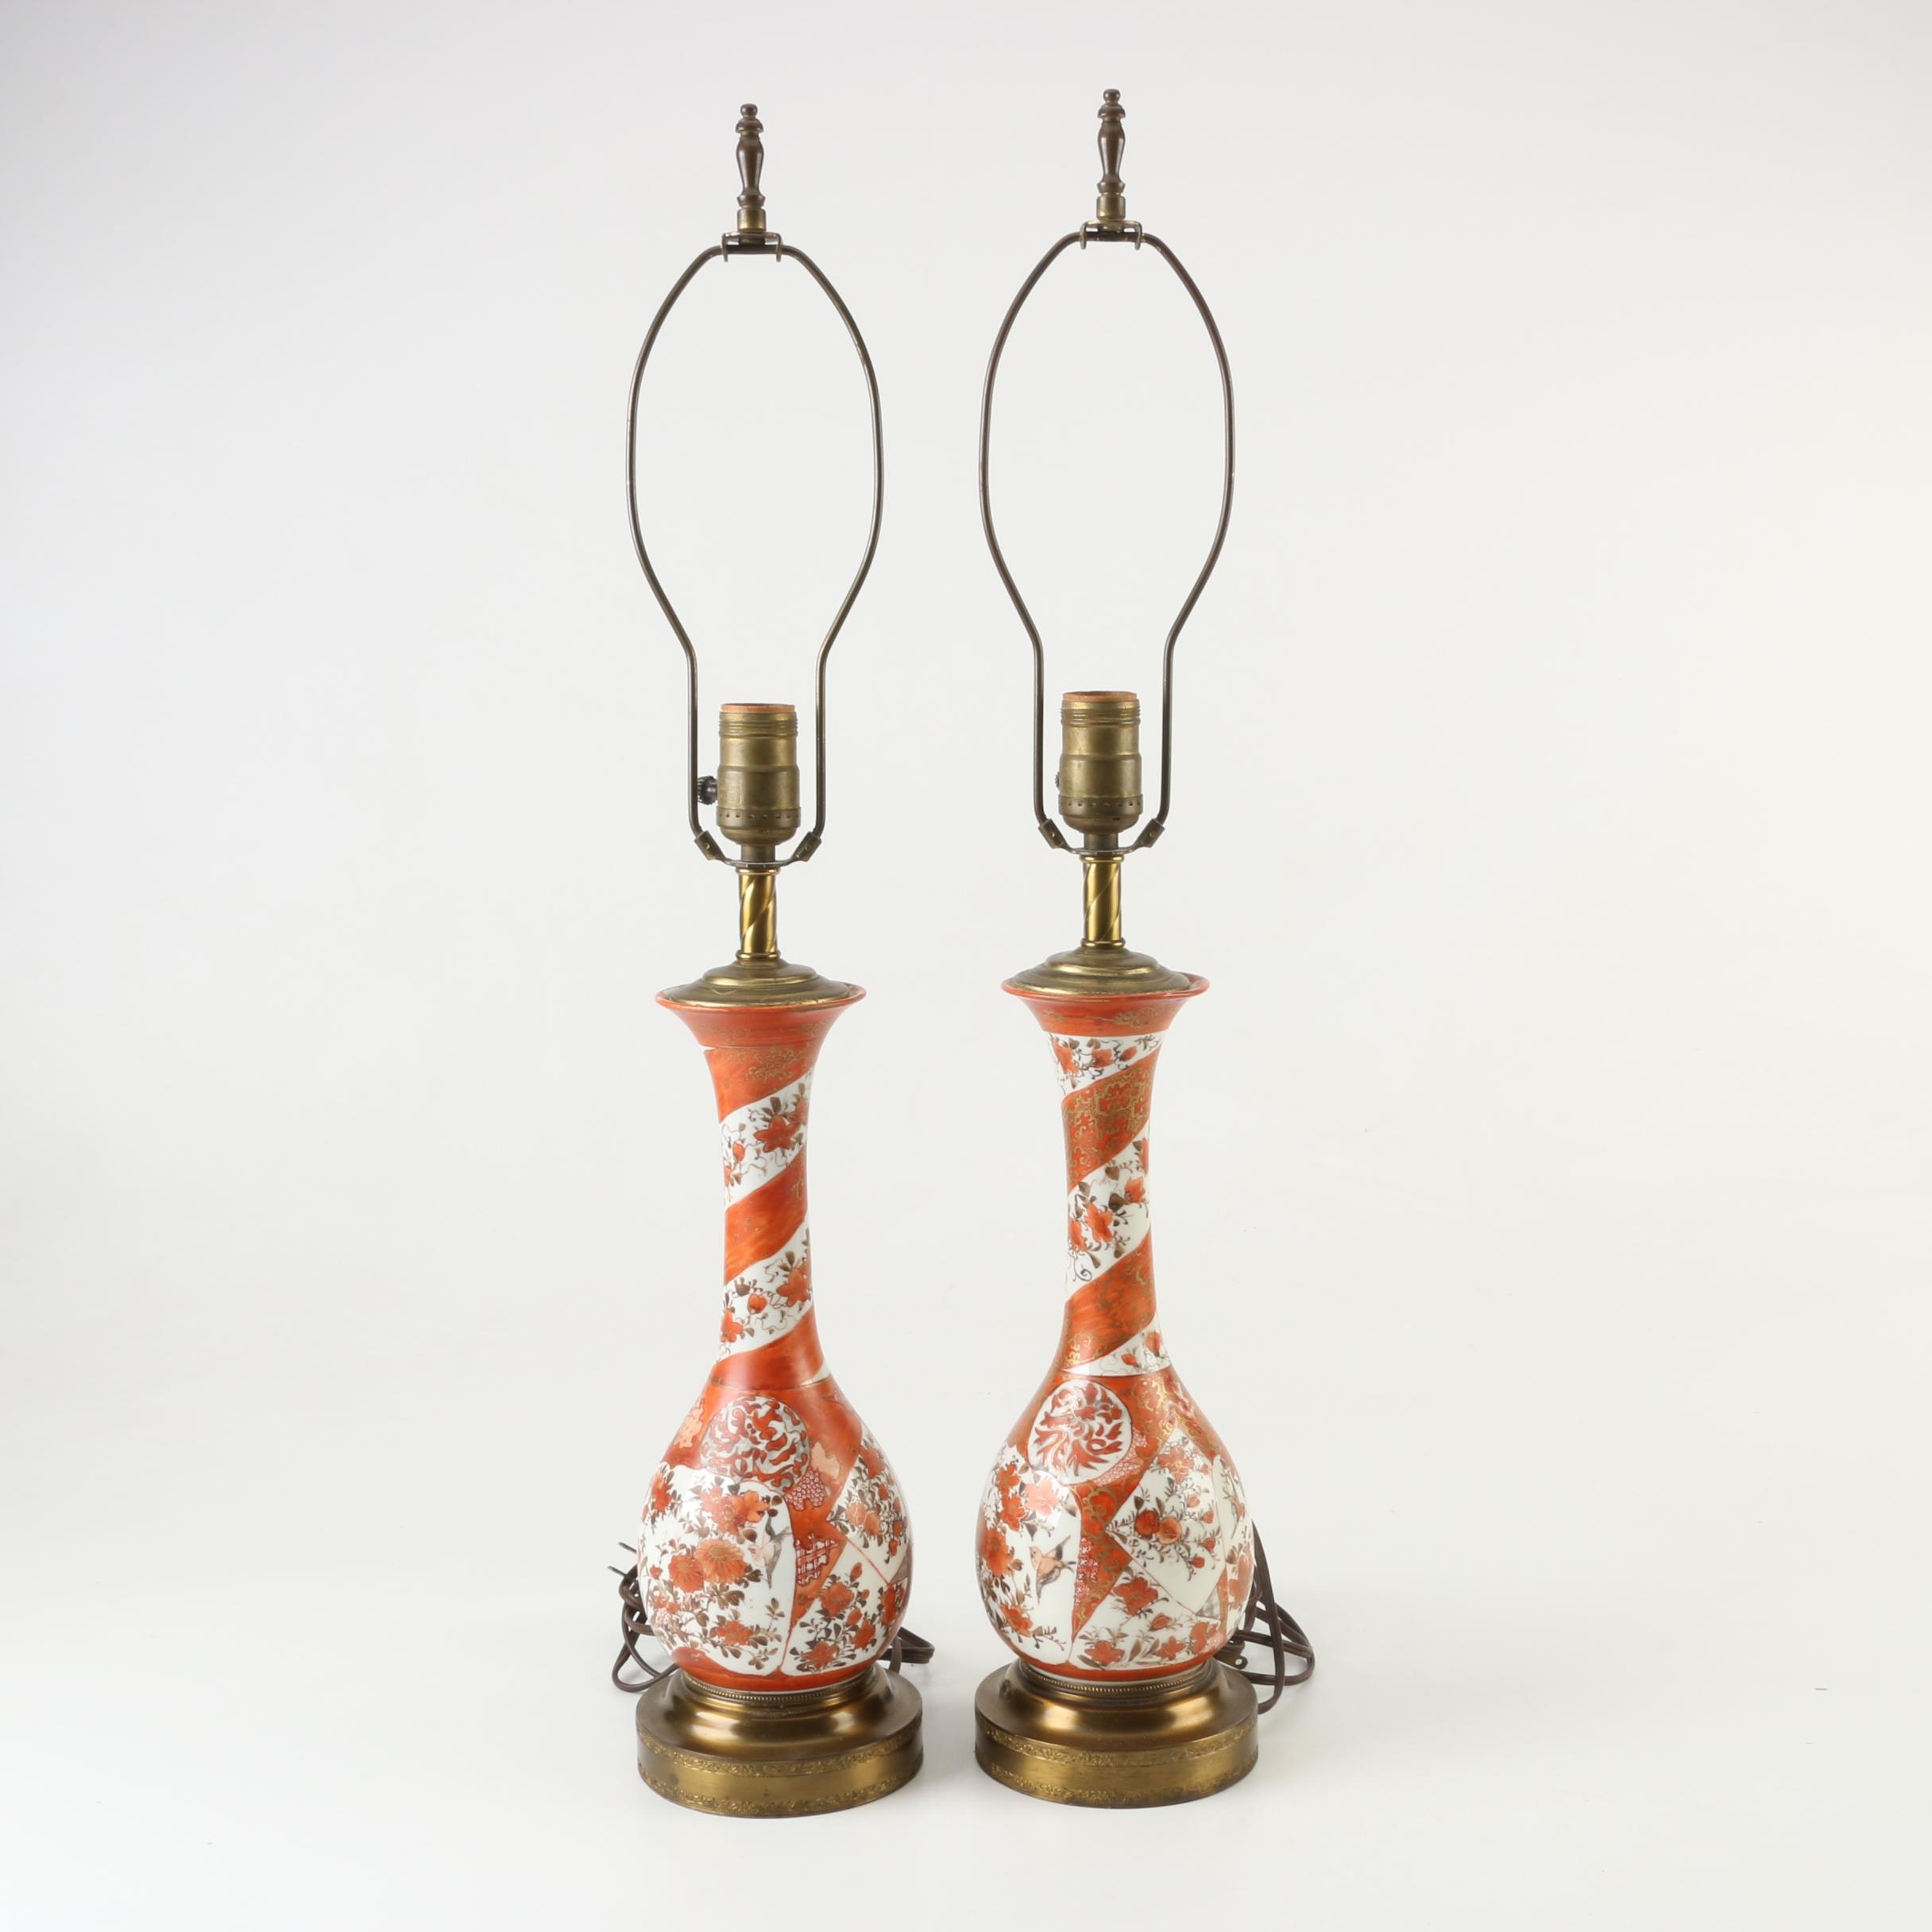 Turn of the Century Hand-Decorated Japanese Vase Table Lamps